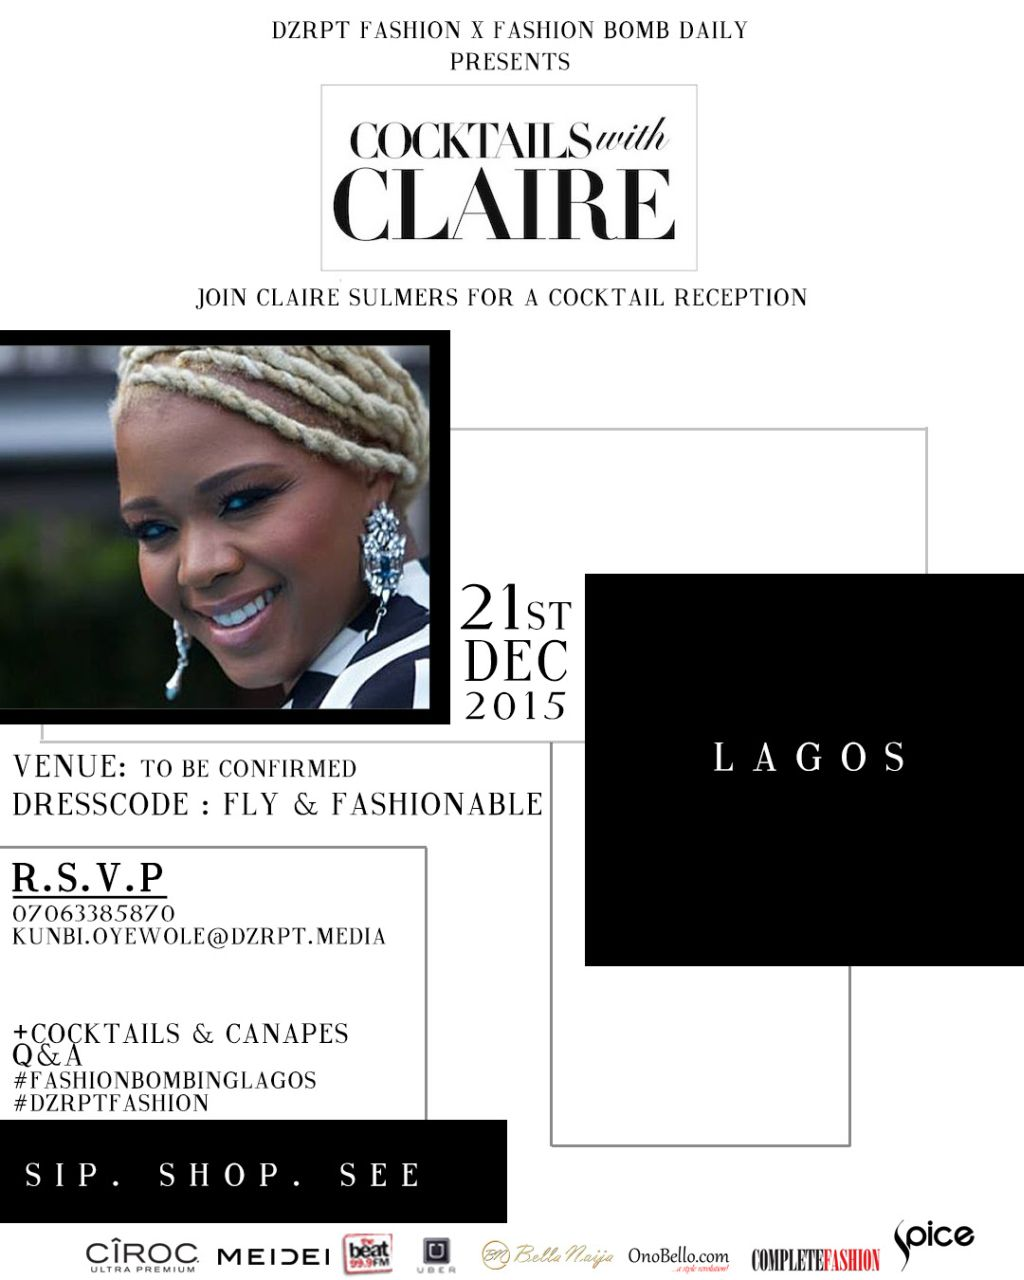 Cocktails with Claire Sulmers in Lagos - BellaNaija - December 2015